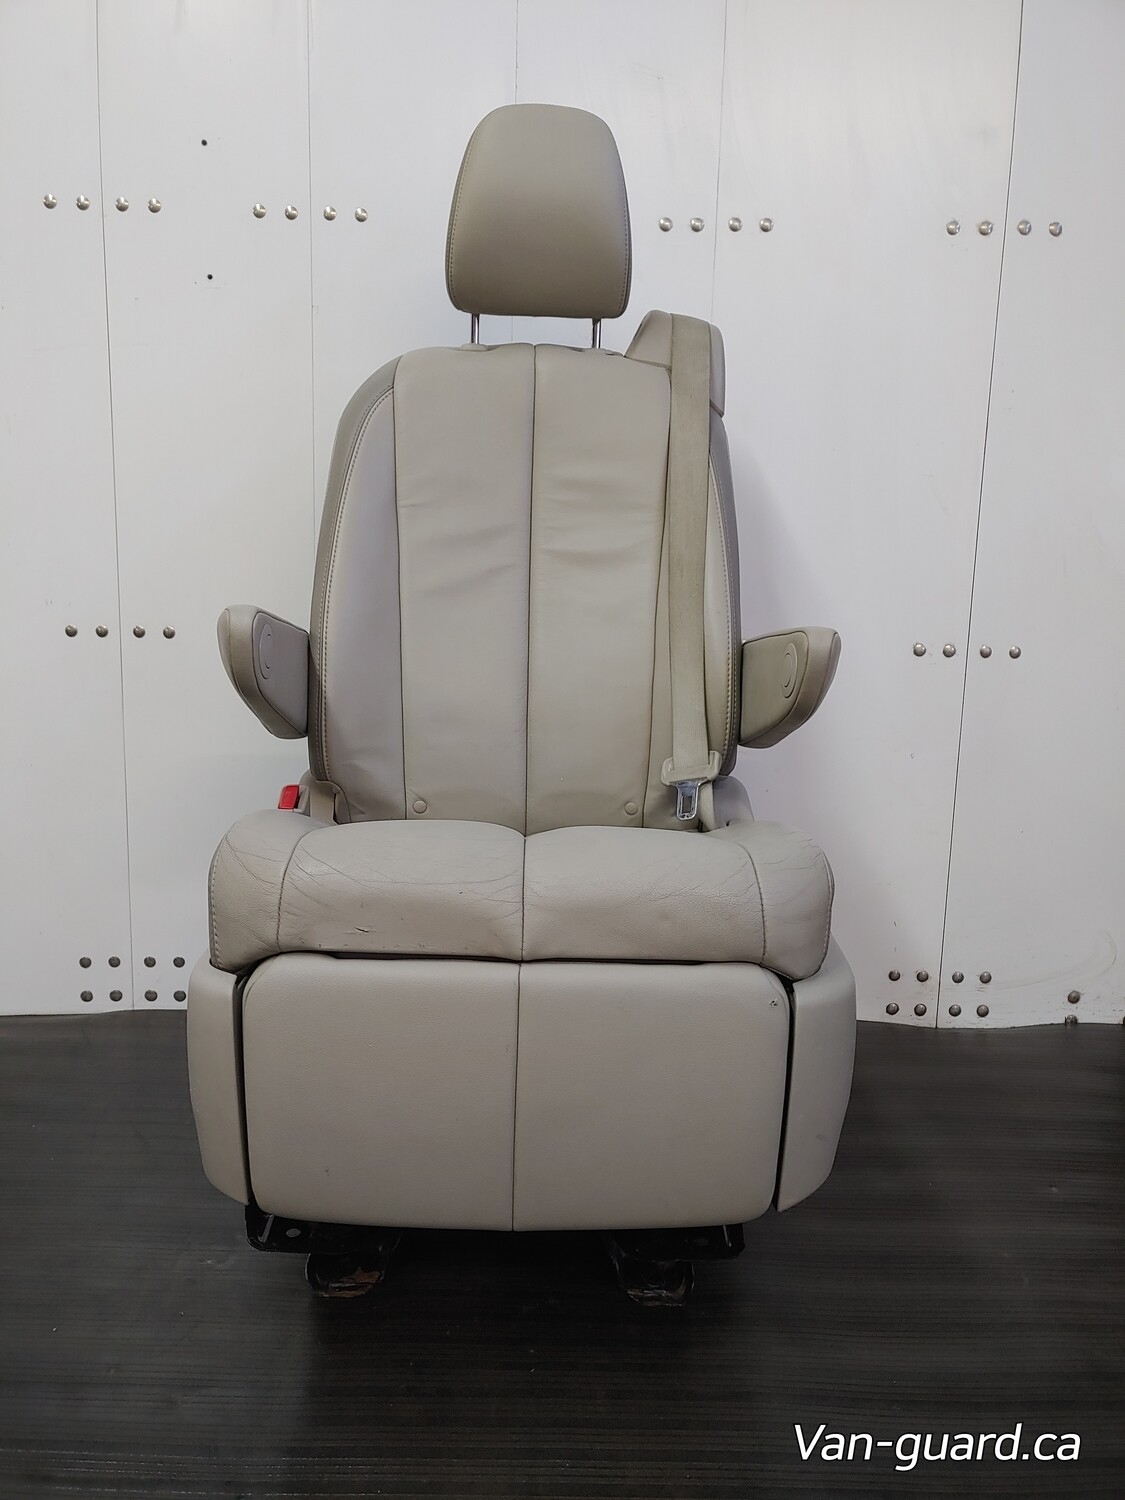 Seat with Leg Rest